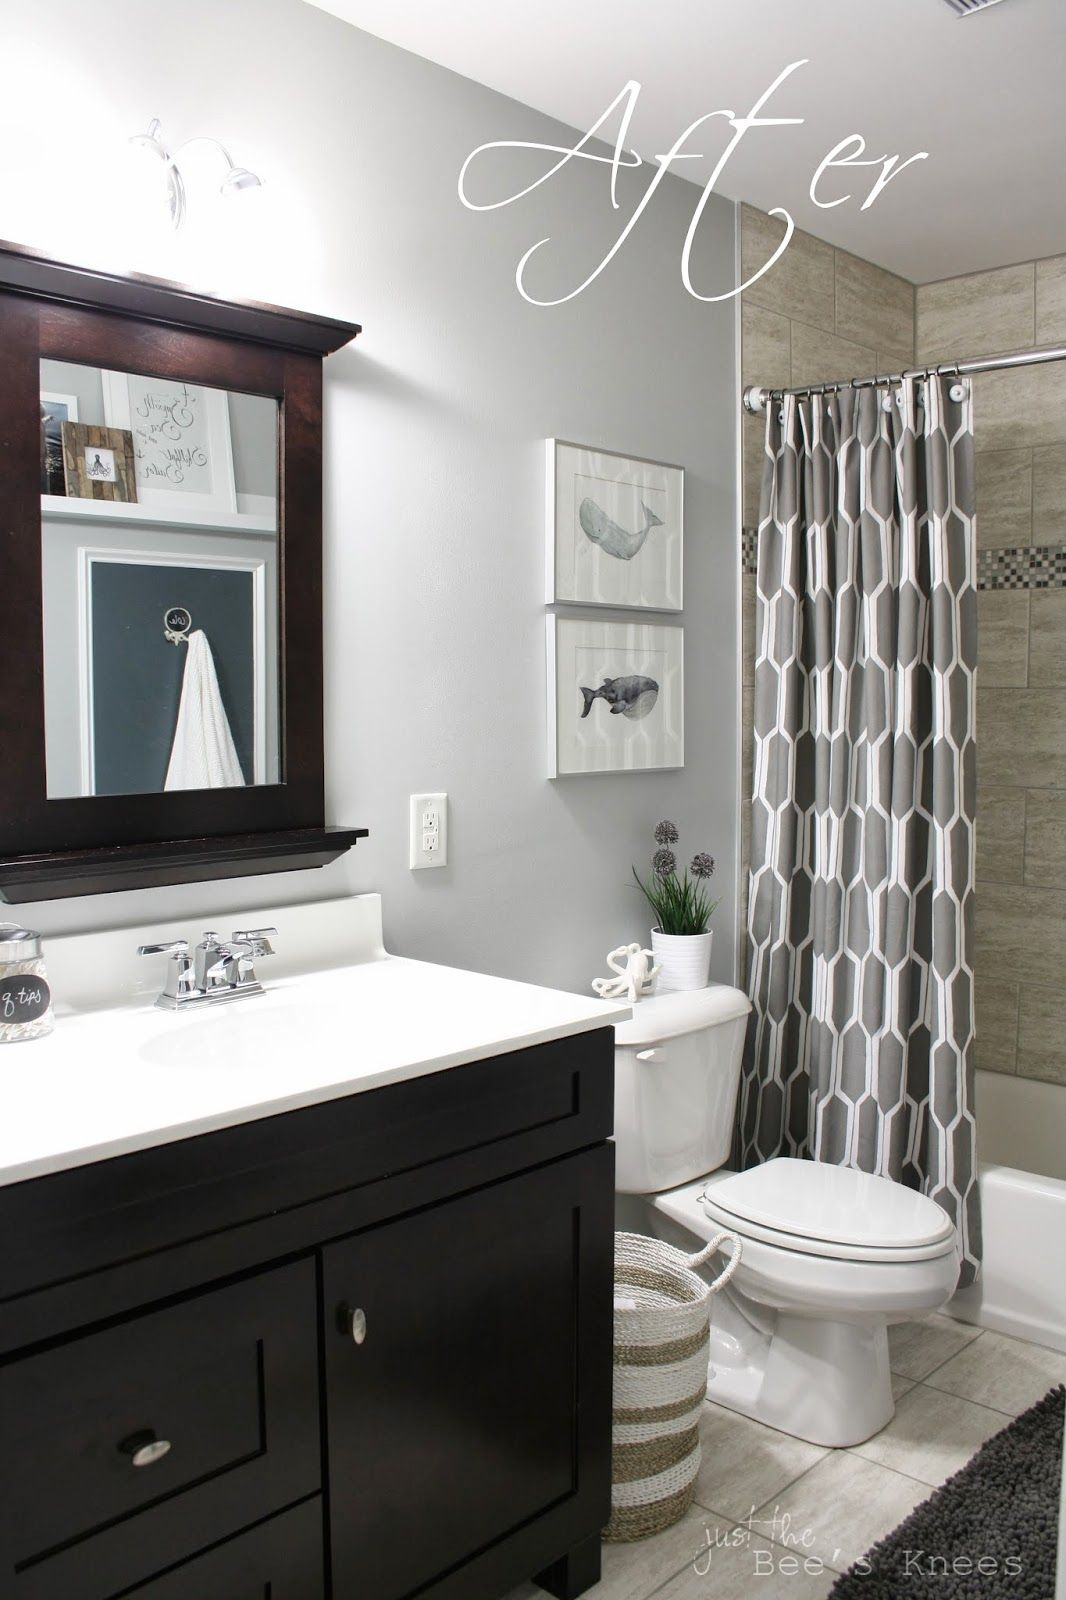 cute bathroom design | Home decor | Pinterest | Sherwin williams ...